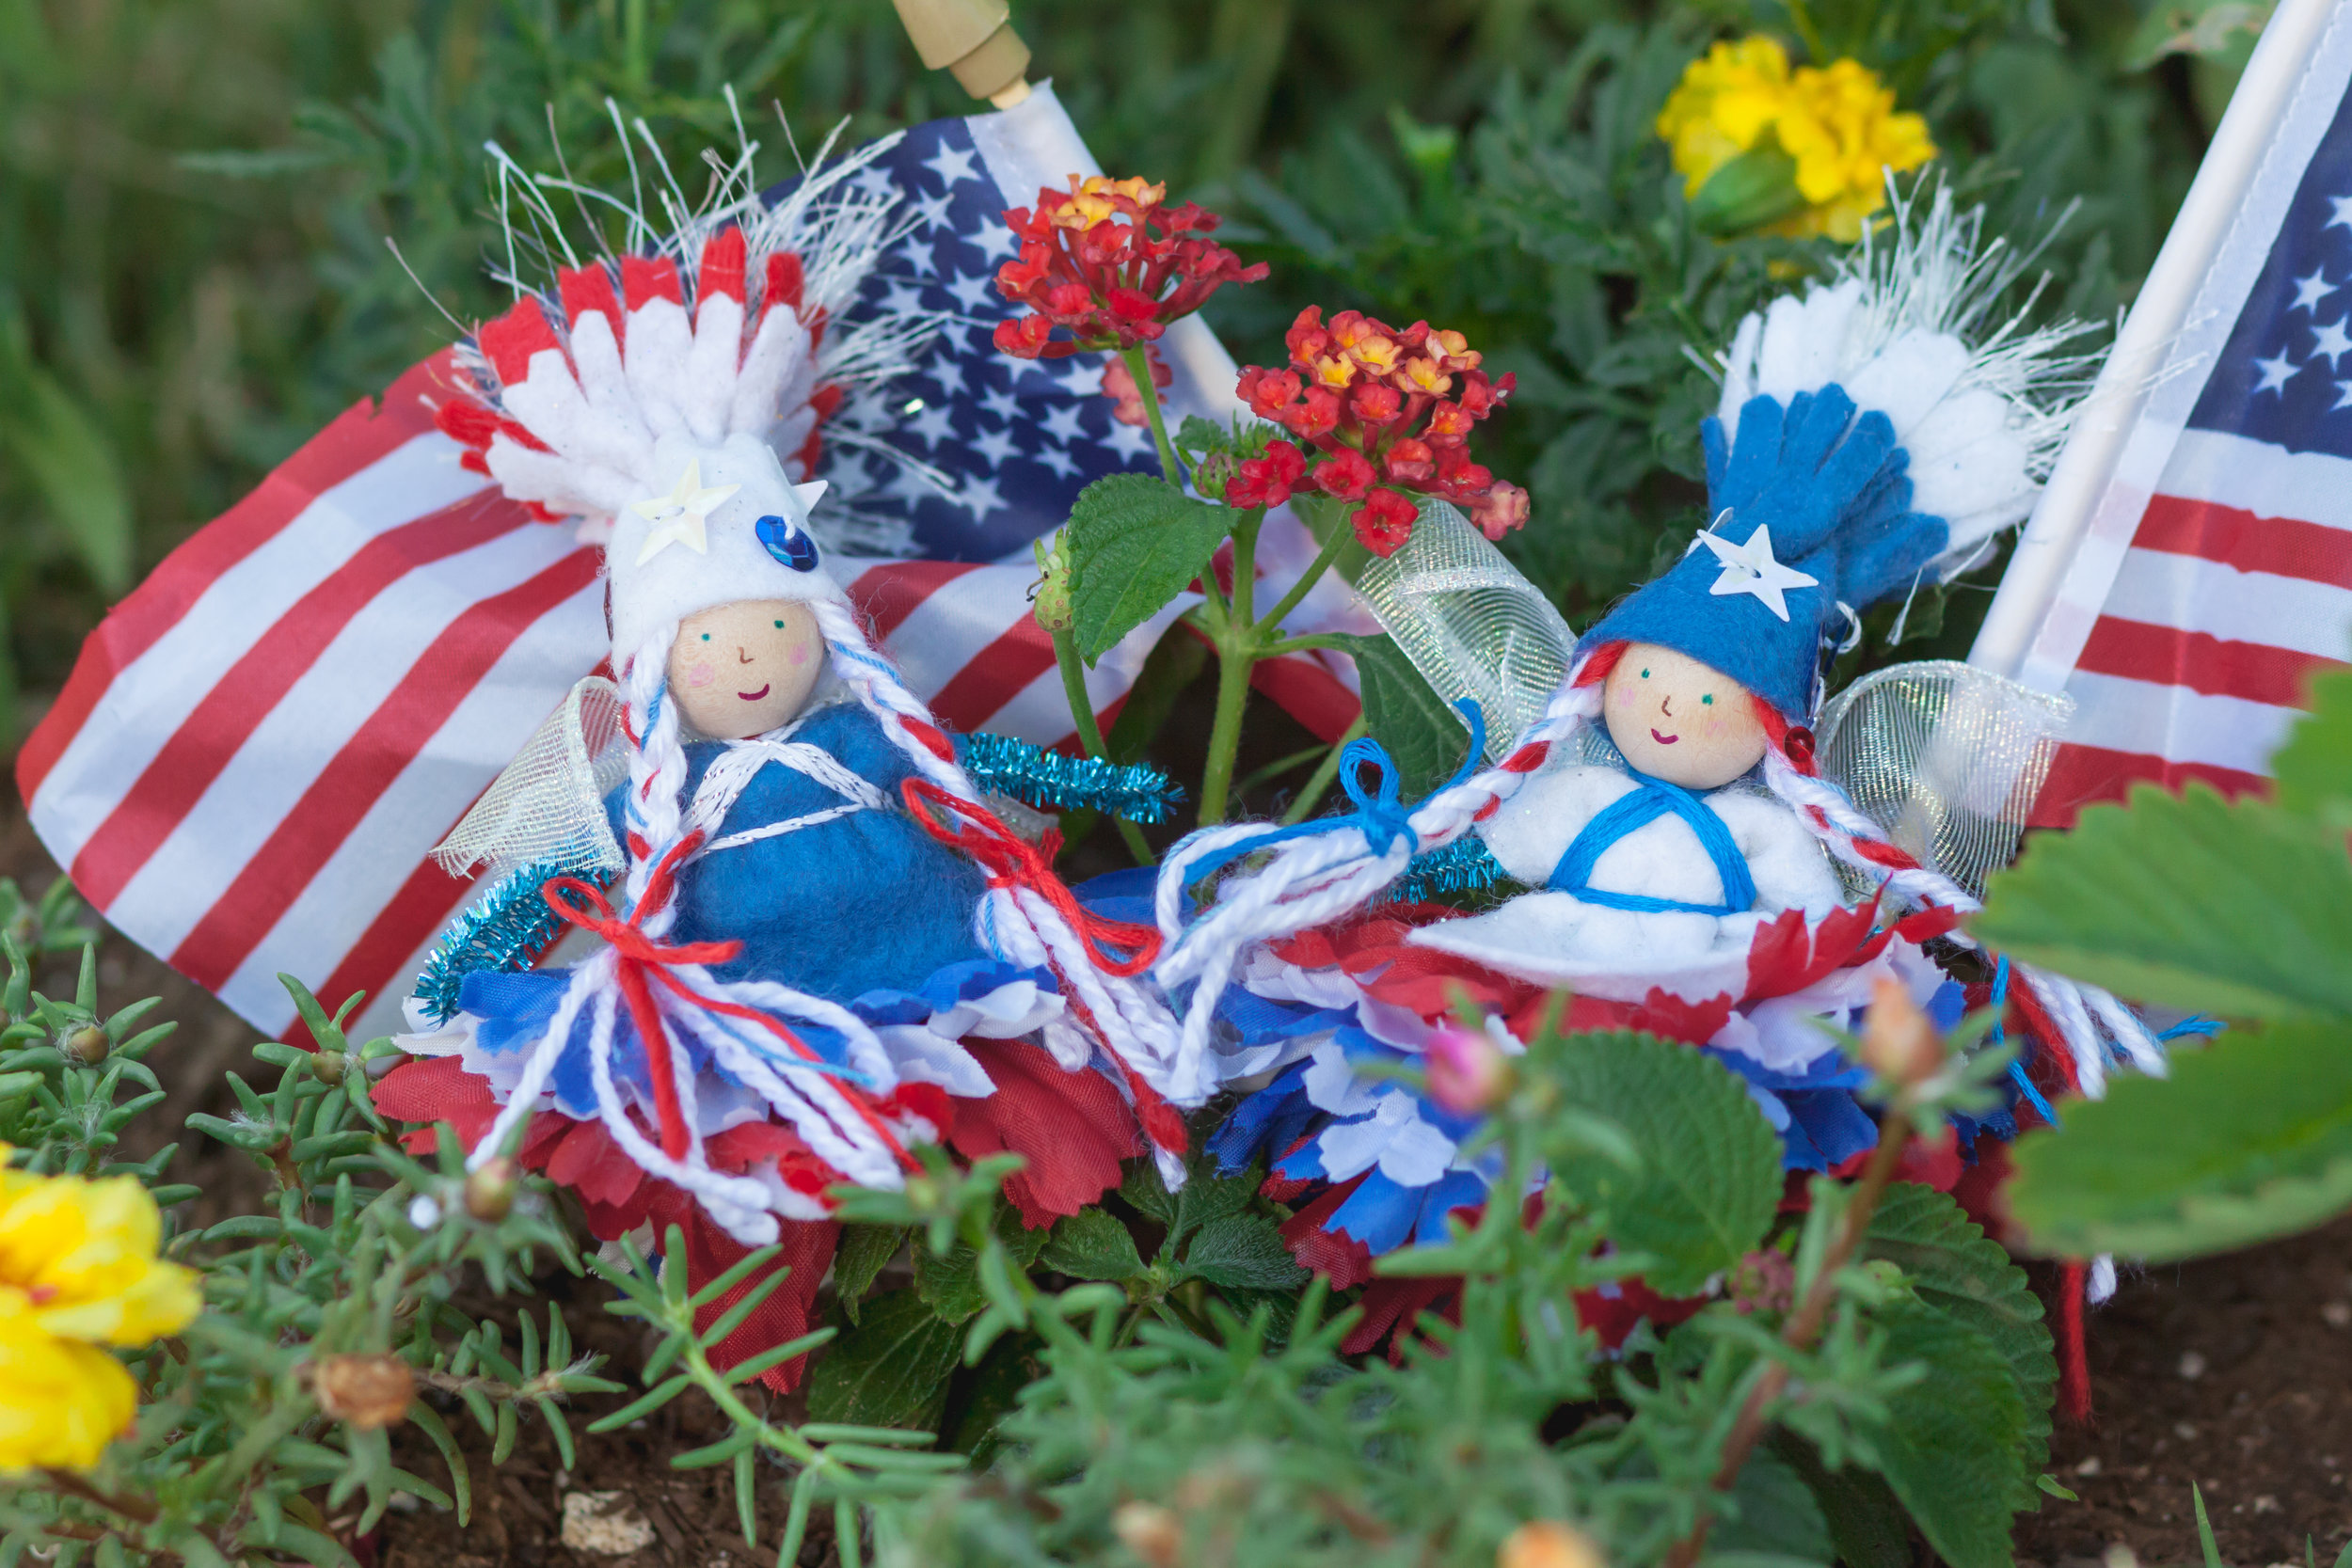 Forest Fairy Crafts | Red, white, and blue patriotic bendy fairy dolls